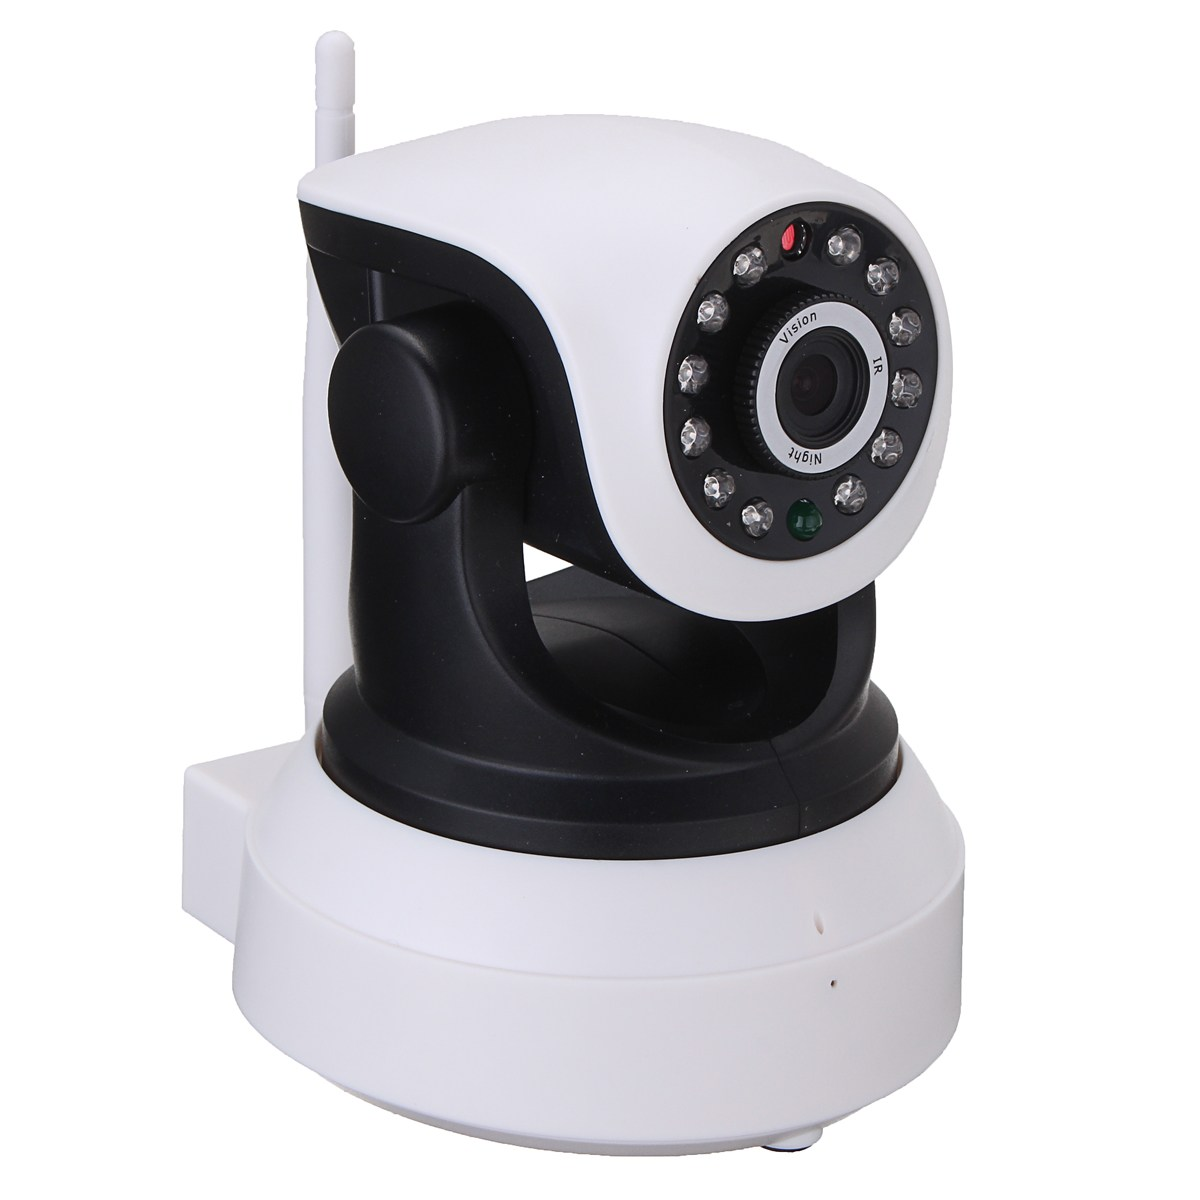 NEW Safurance Wireless IP Camera 720P Pan Tilt Network Security Night Vision WiFi Webcam Home Safety Surveillance